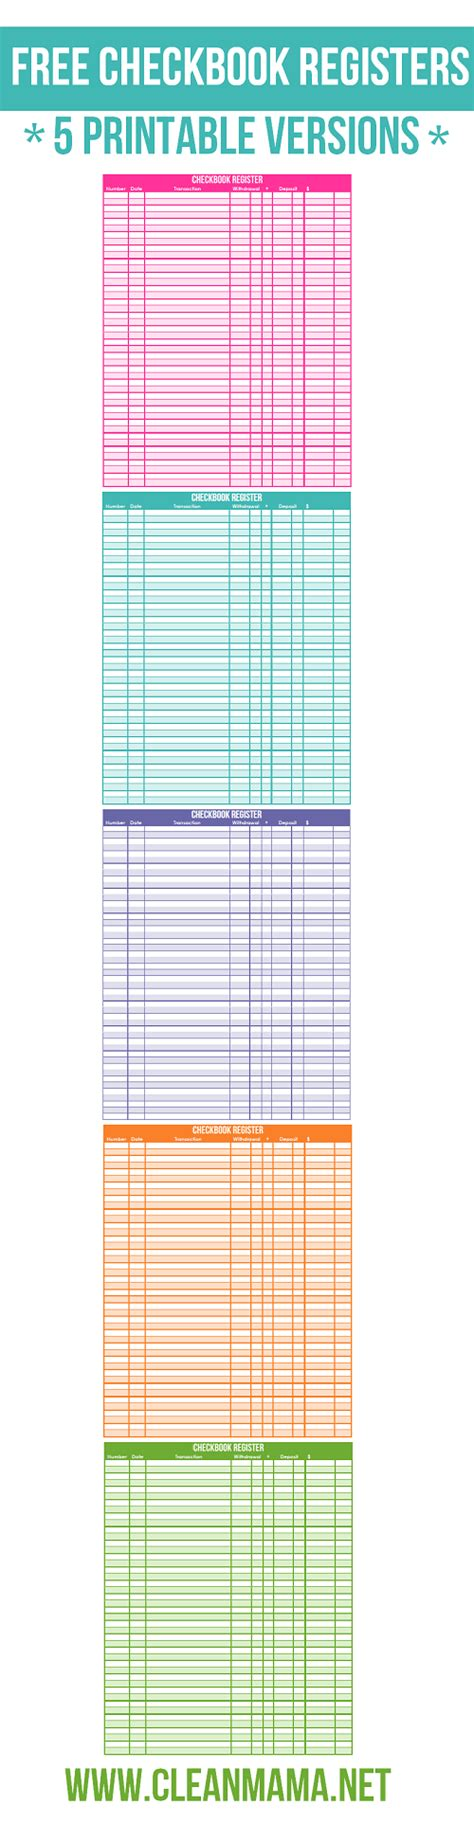 Free Checkbook Registers 5 Printable Versions Clean Mama Free Printable Check Register Templates